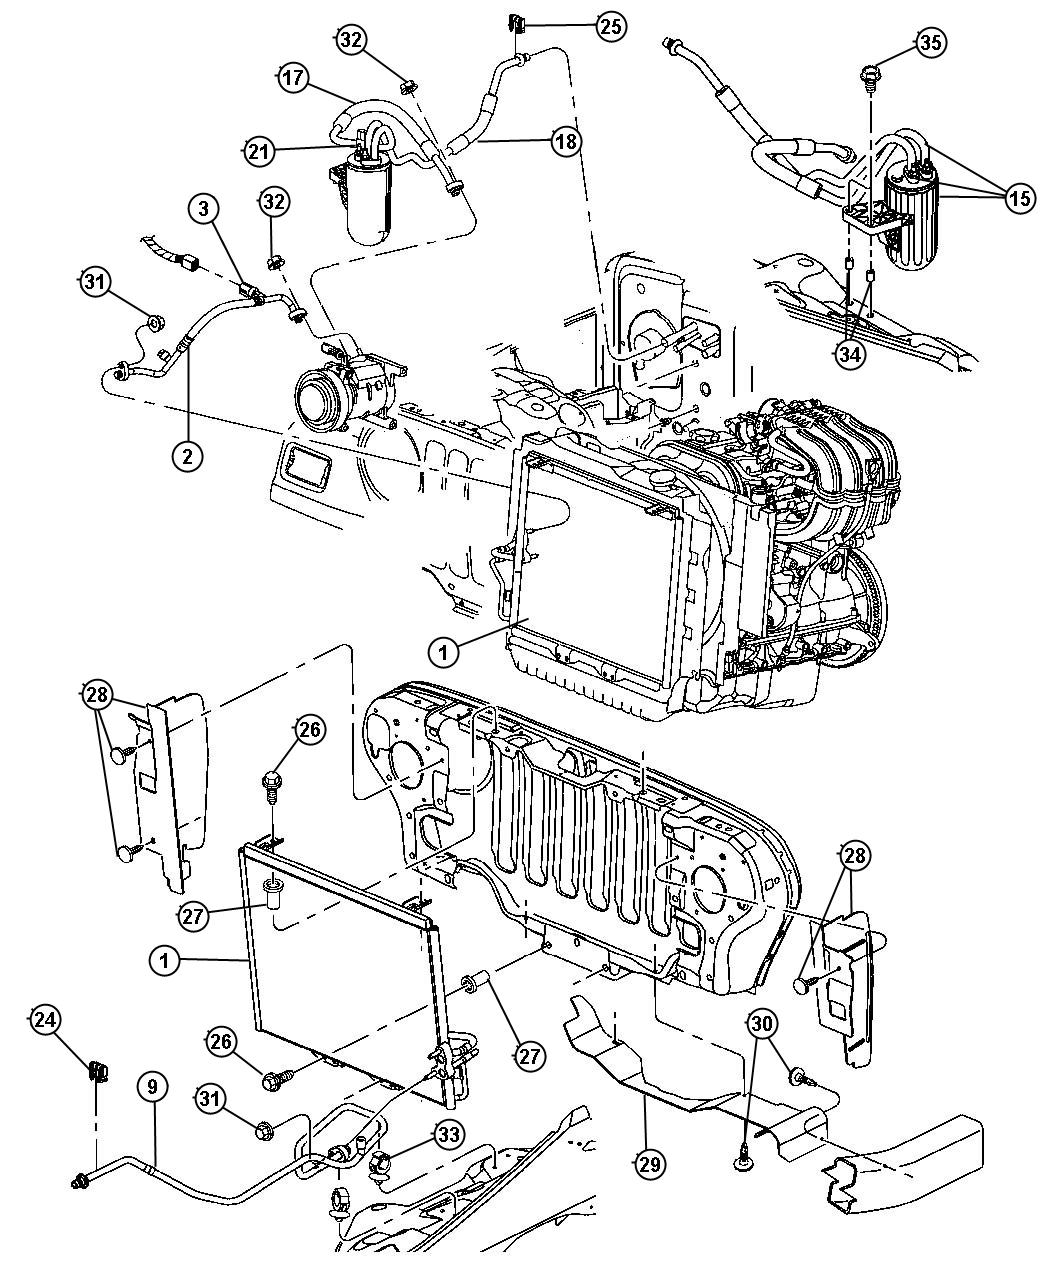 hight resolution of 2007 2015 jeep oem parts diagram 2007 free engine image jeep wrangler tj parts diagram jeep wrangler tj parts diagram